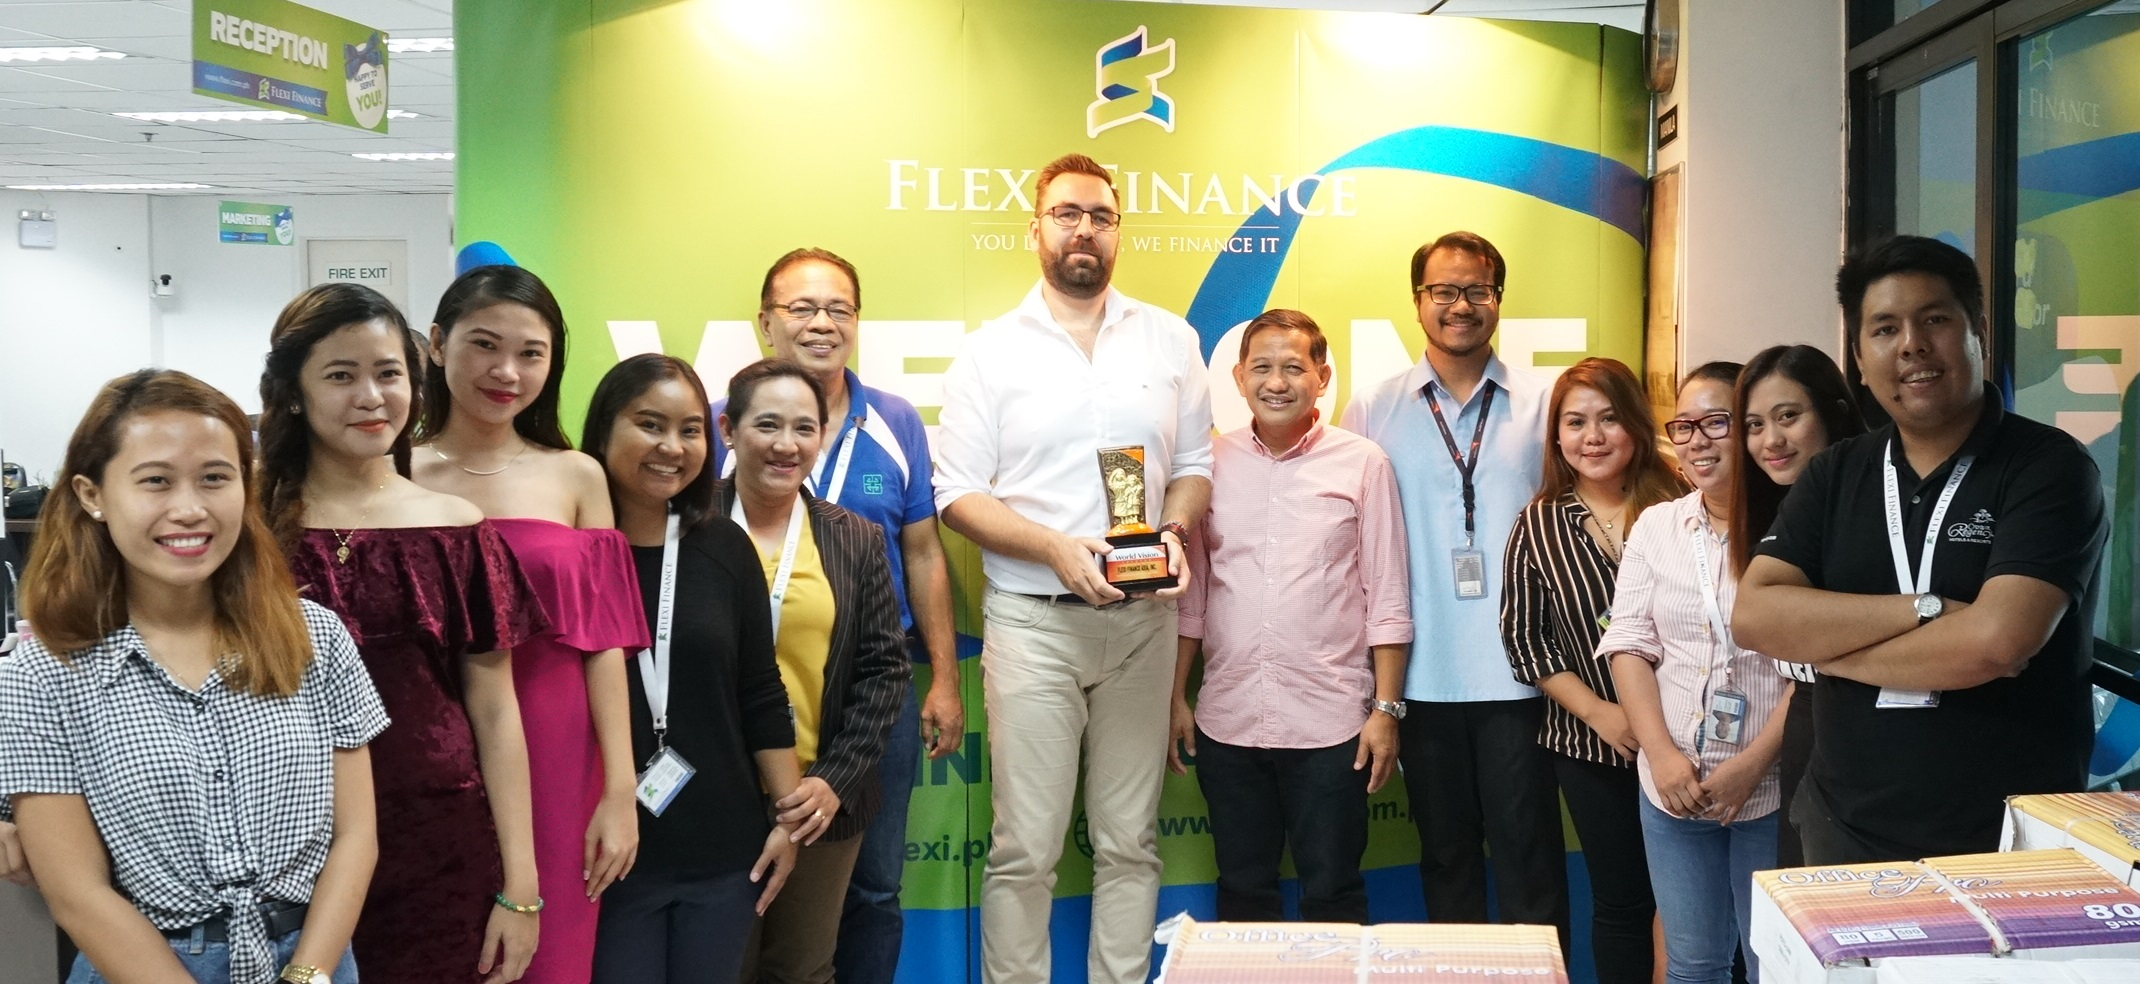 Cebu City – World Vision Development Foundation awarded the One For Children seal to Flexi Finance Asia, Inc. during a Project Salute ceremony held last July 9, 2019. WVDF Associate Director for Visayas Operations Ernesto I. Macabenta and Corporate Engagement Specialist Rafael Quimel handed over the plaque, which in turn was received by Richard Lorincz, the Chief Marketing Officer of Flexi Finance Asia, along with some of the company staff.